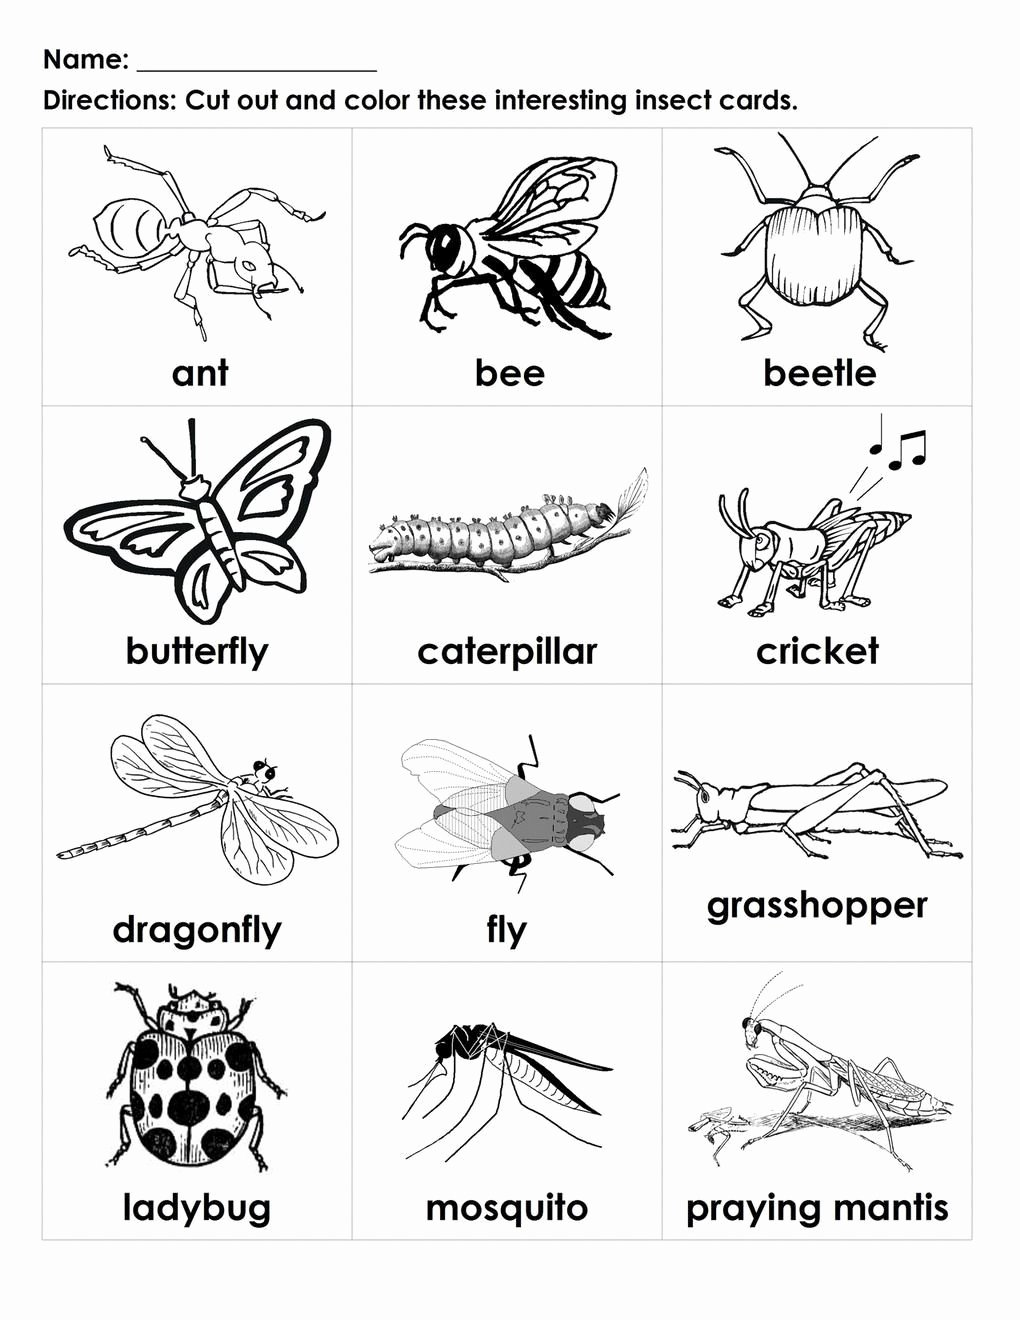 Insects Worksheets for Preschoolers Lovely Insects Worksheets for Kindergarten Bugs for Kids to Color